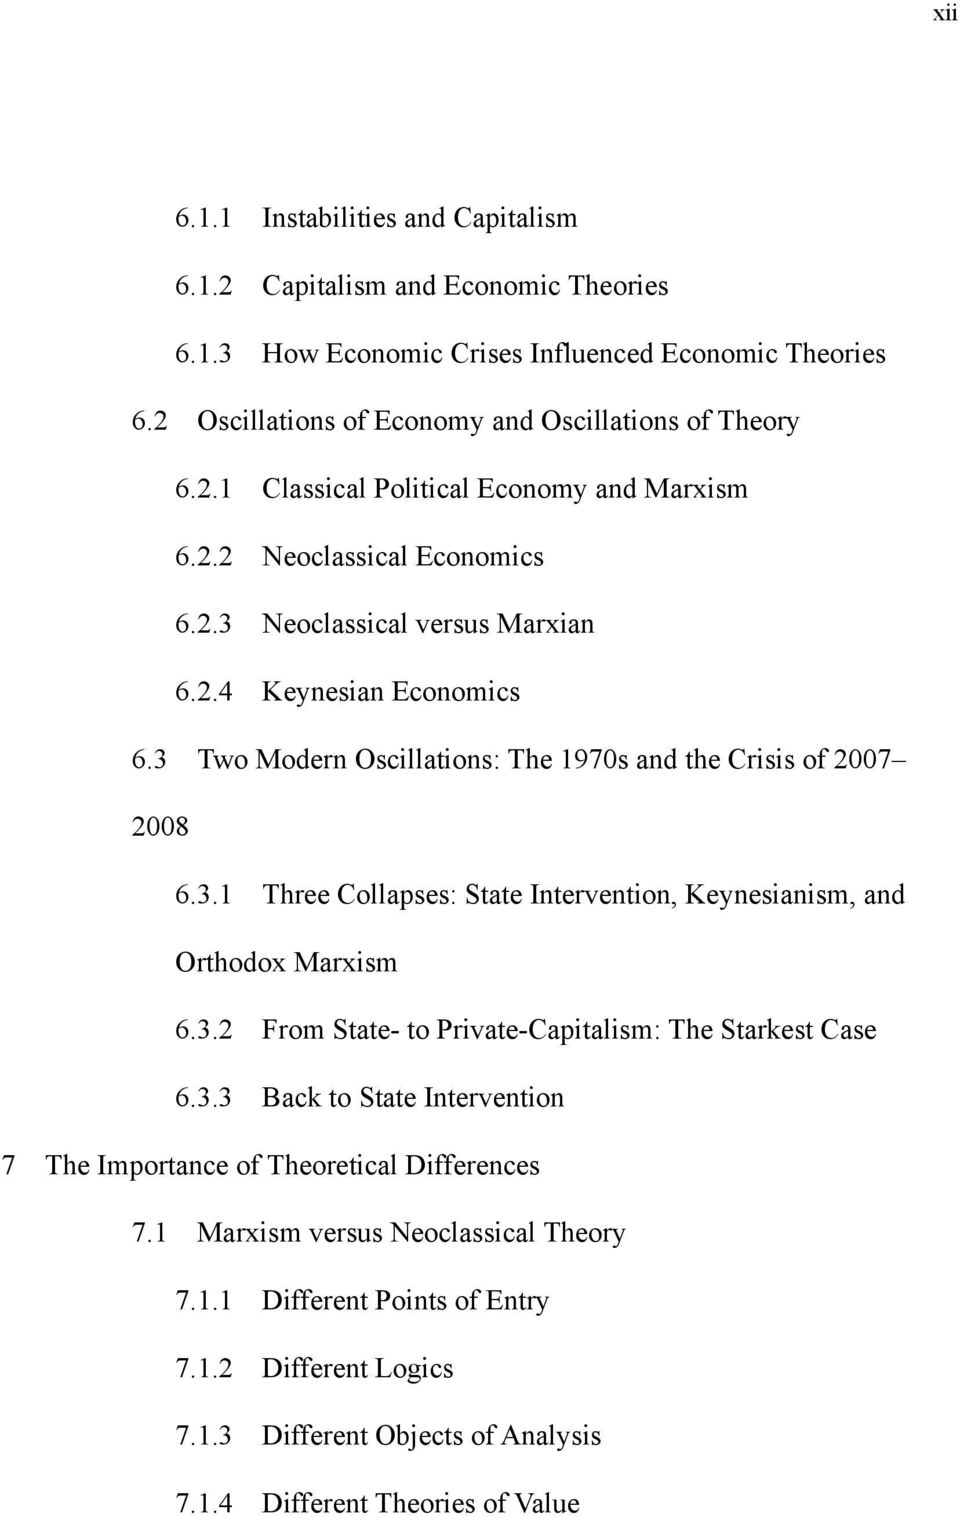 3.2 From State- to Private-Capitalism: The Starkest Case 6.3.3 Back to State Intervention 7 The Importance of Theoretical Differences 7.1 Marxism versus Neoclassical Theory 7.1.1 Different Points of Entry 7.